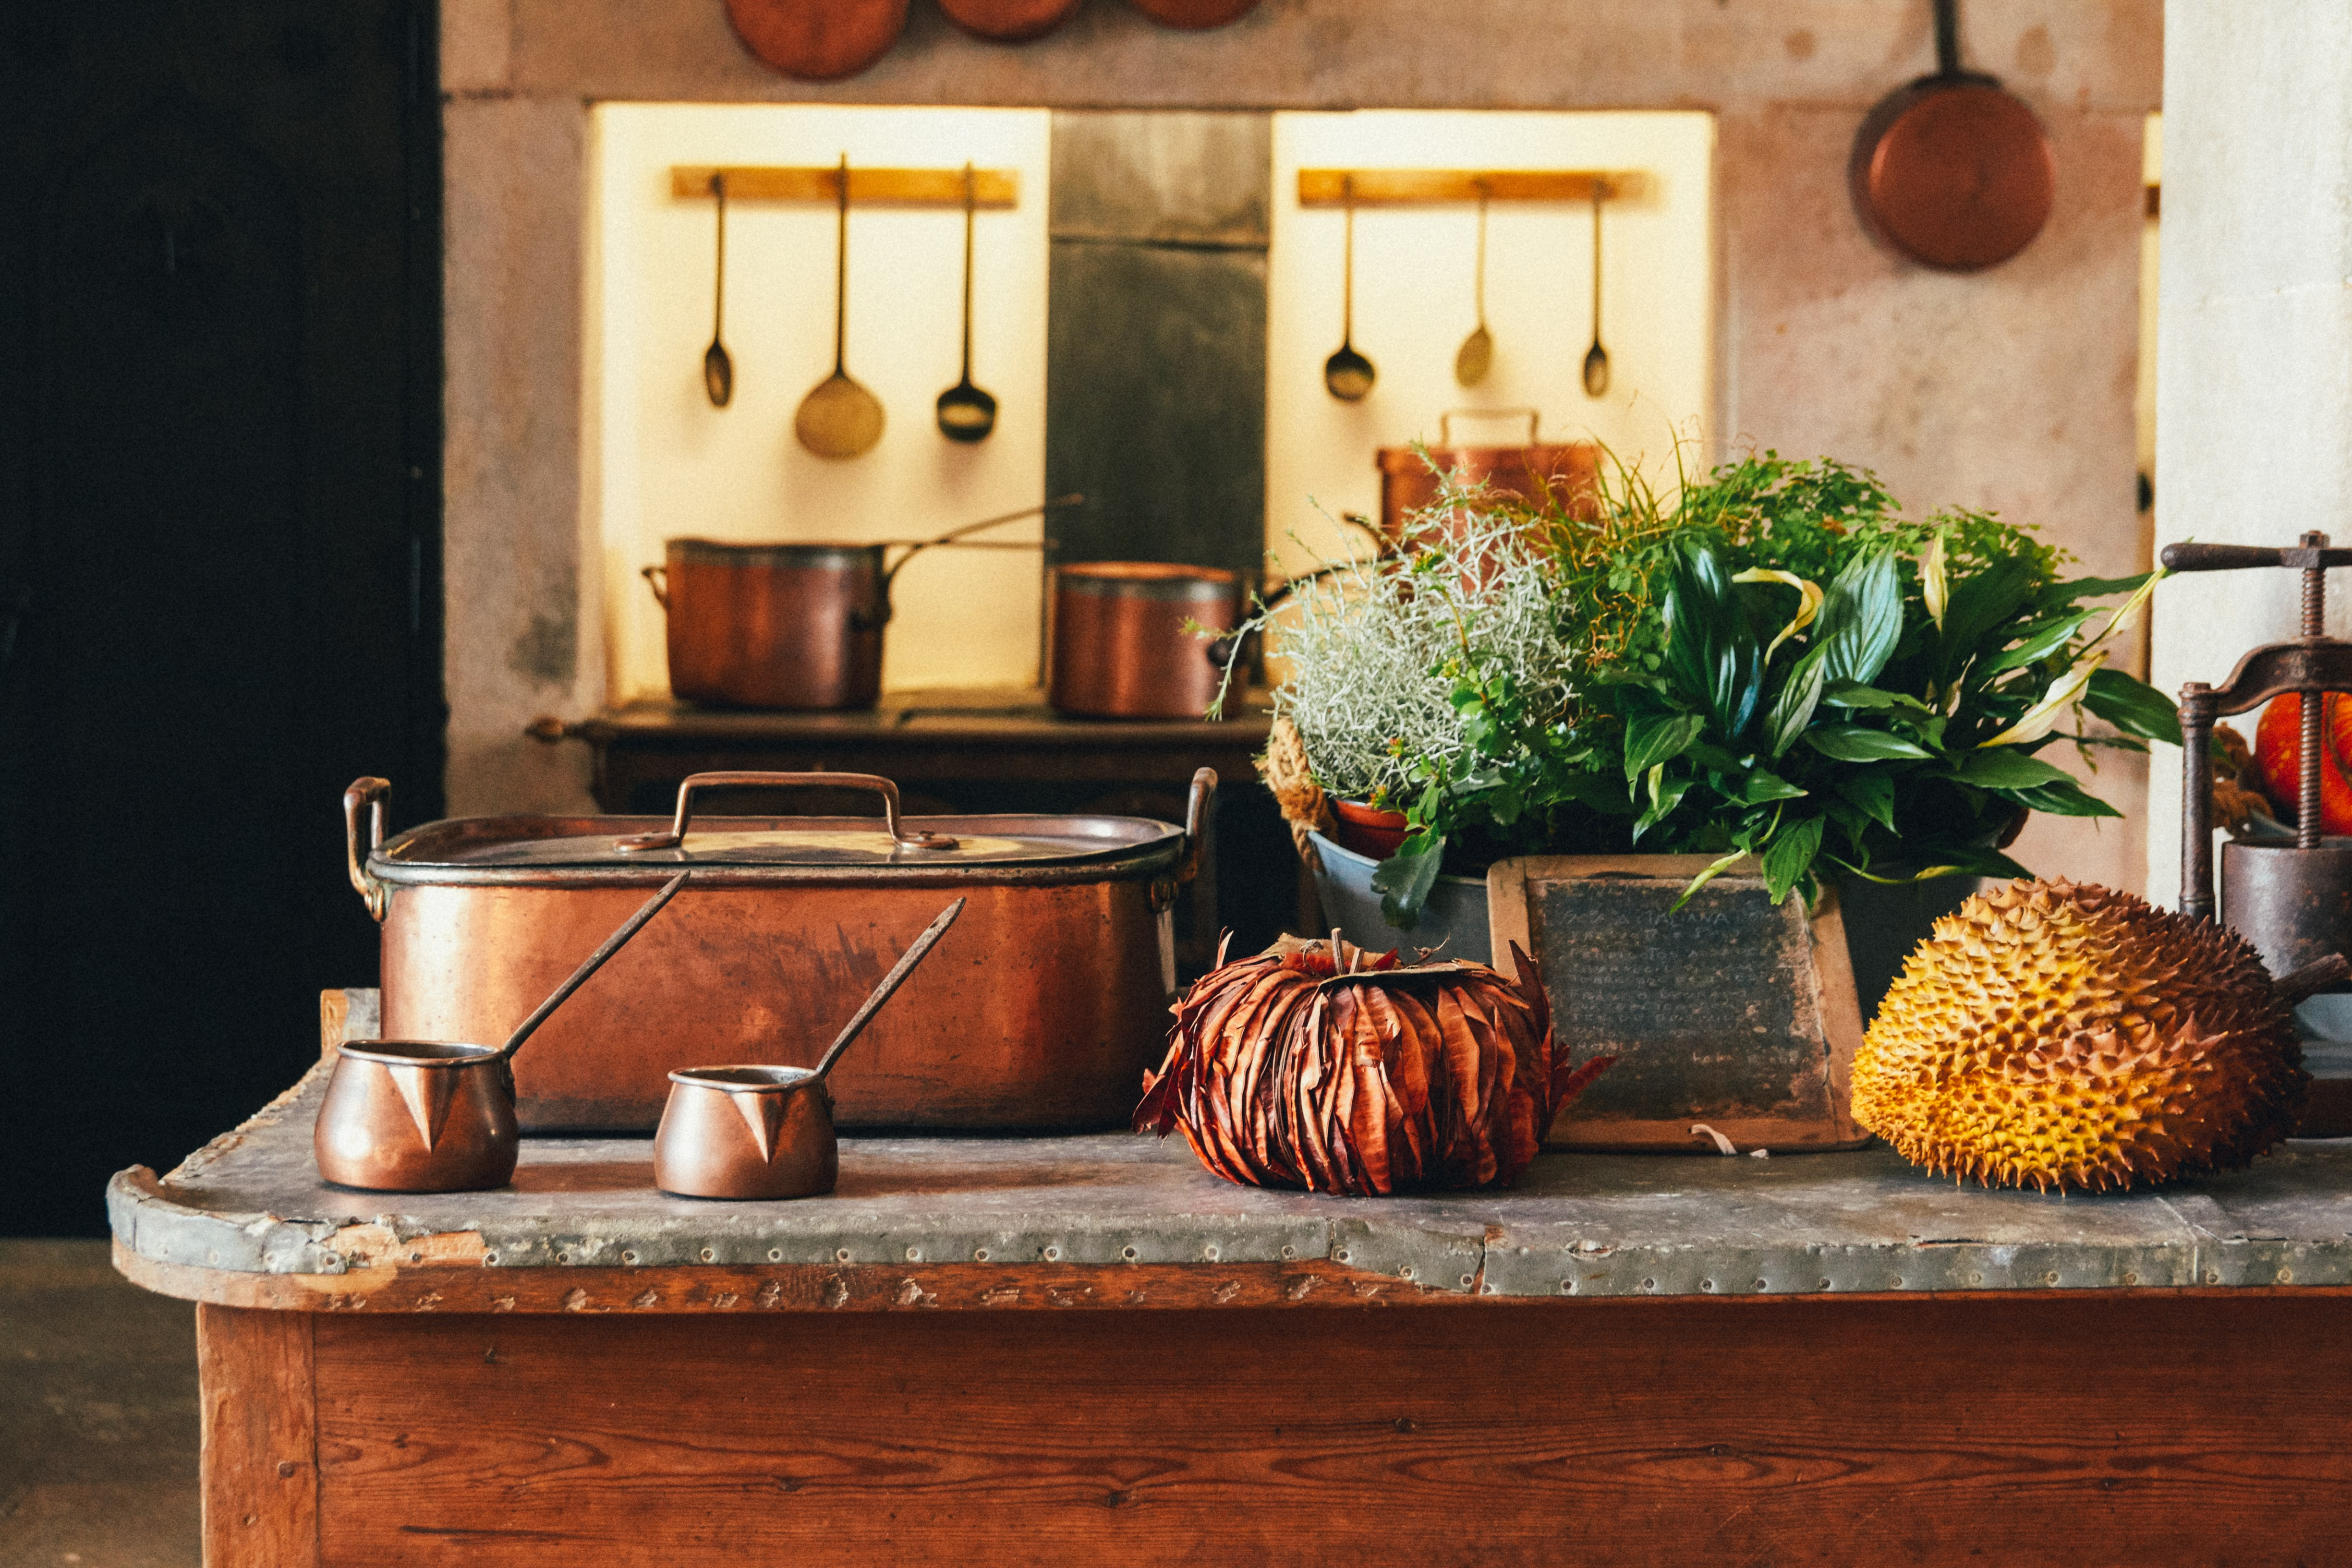 brown metal cooking pot near fruits and green leaf plant on table